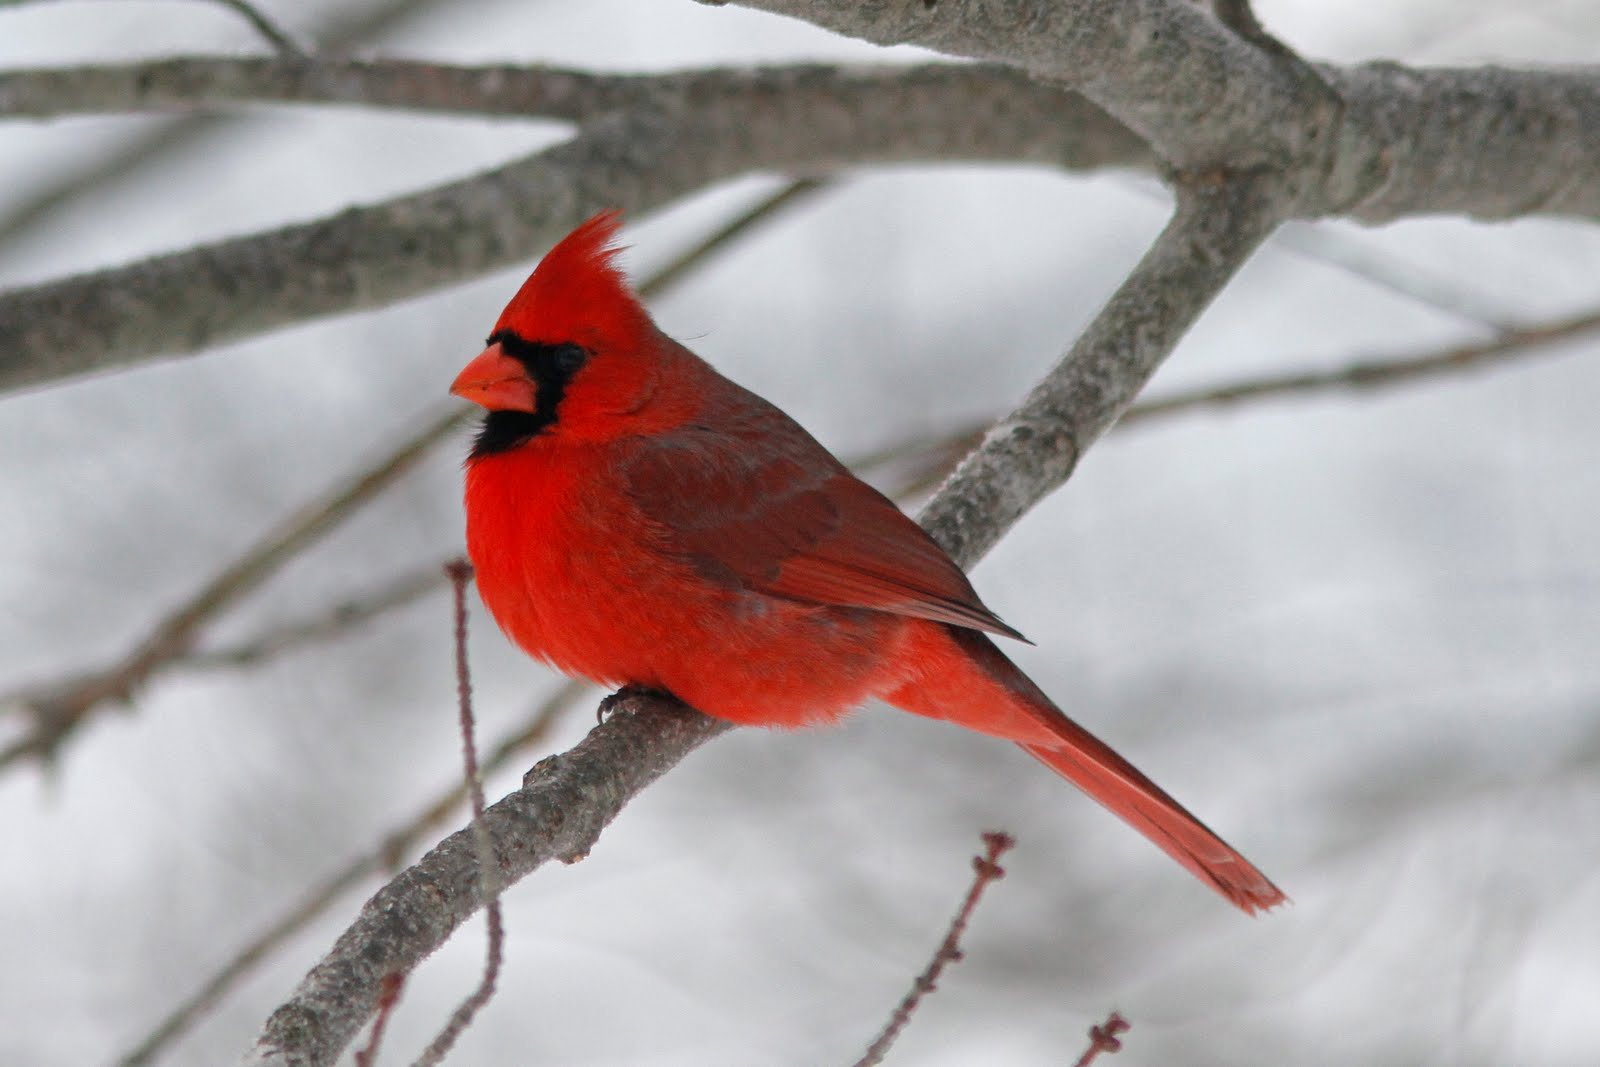 Quabbin birding and beyond: Winter birds at Covey WMA